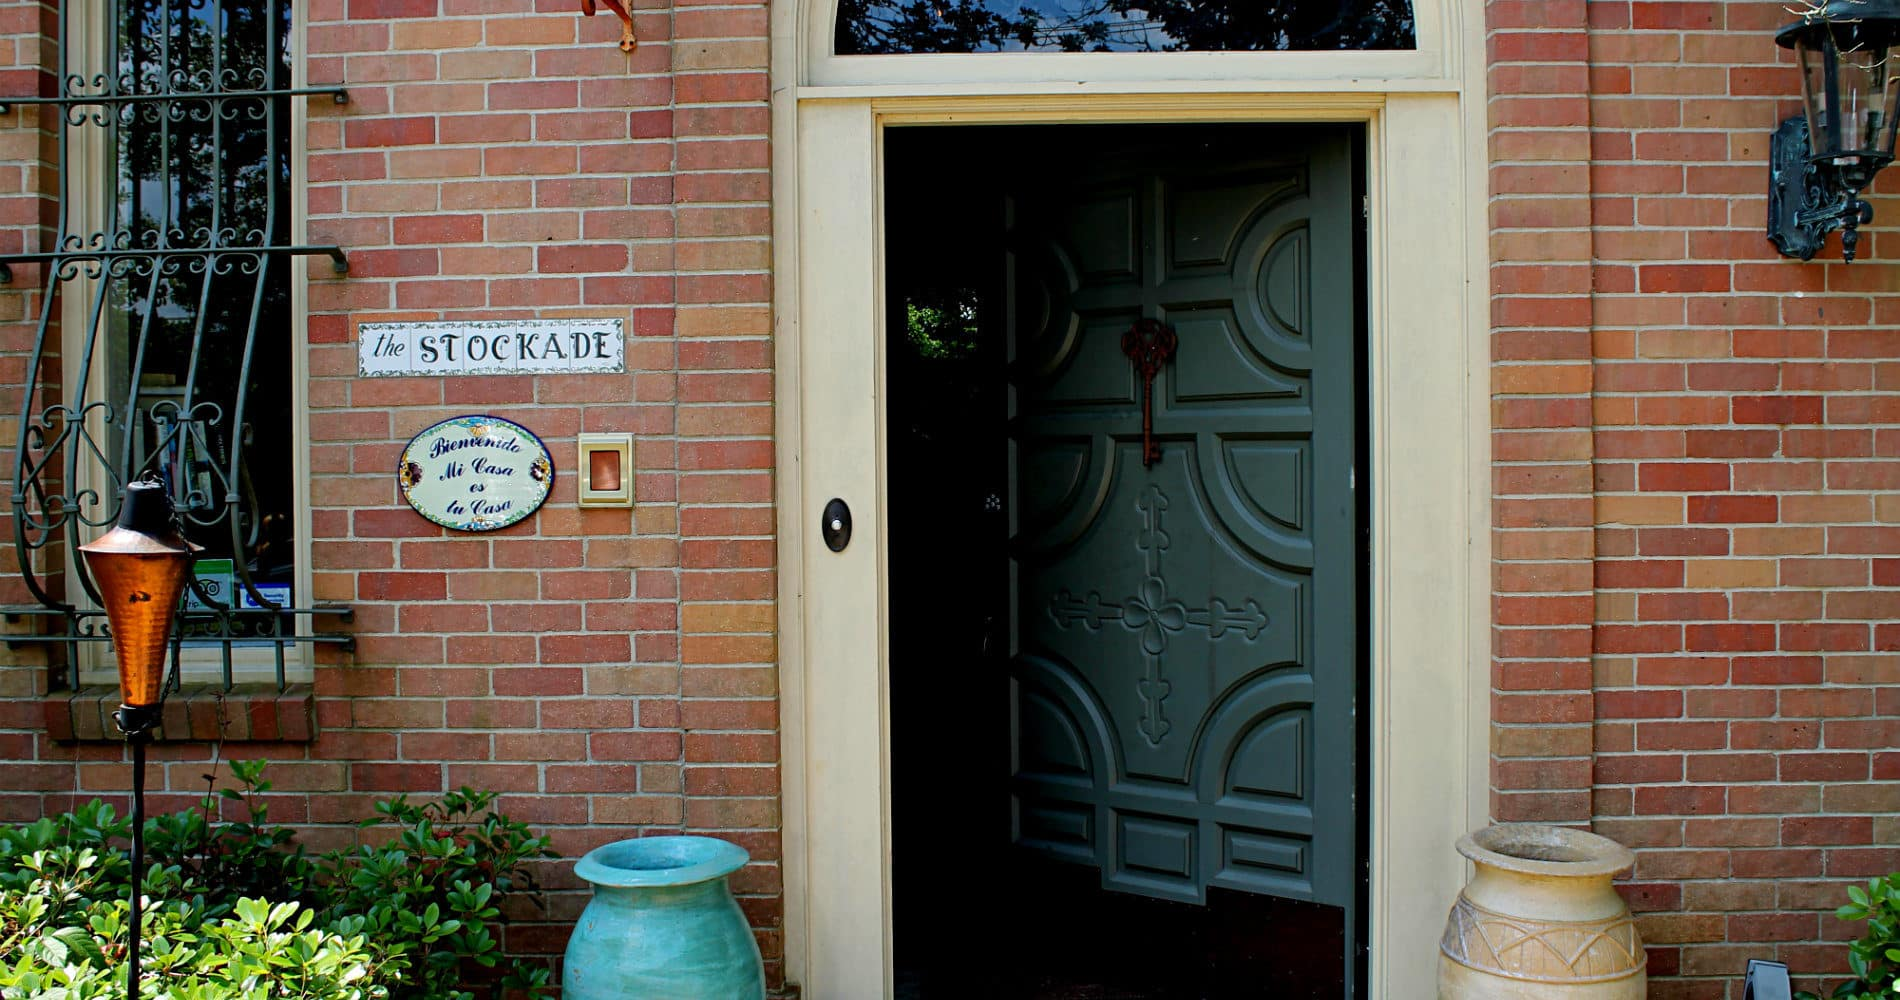 Open aqua blue front door of inn showing The Stockade sign in tile and welcome sign in Spanish to the right of door